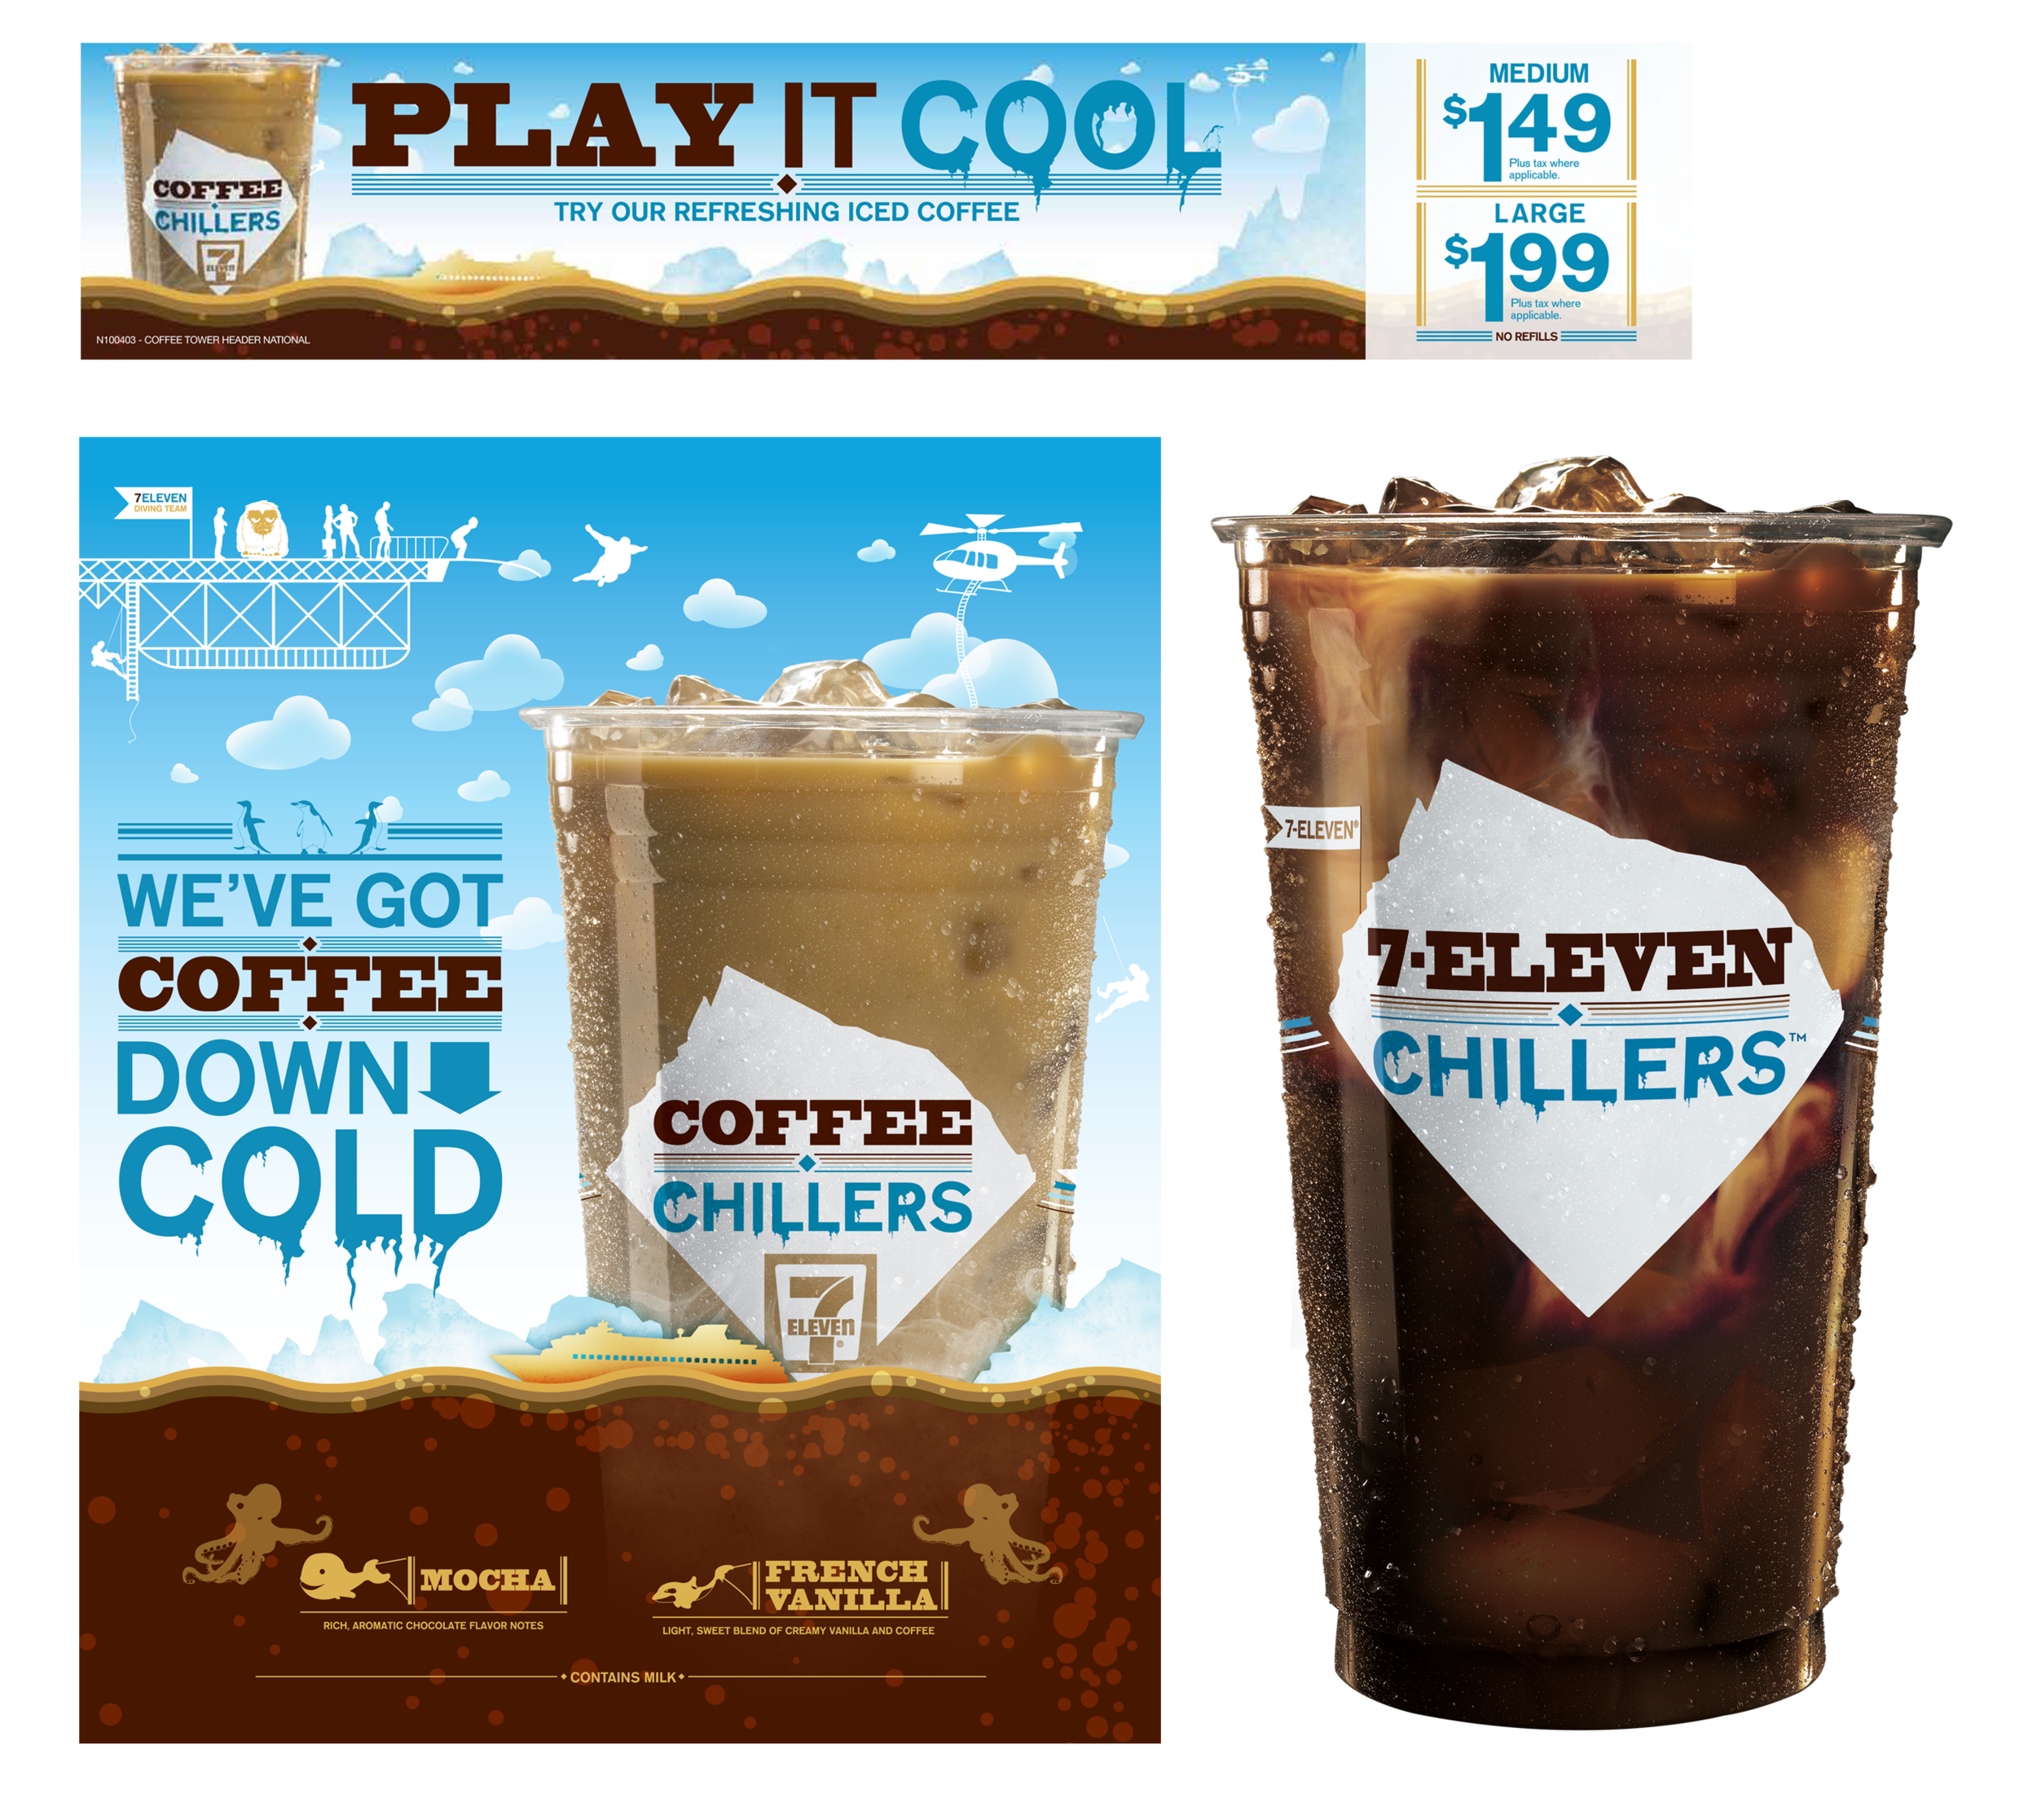 ICED COFFEE TRANSLITE, PRICE CARD AND PACKAGING